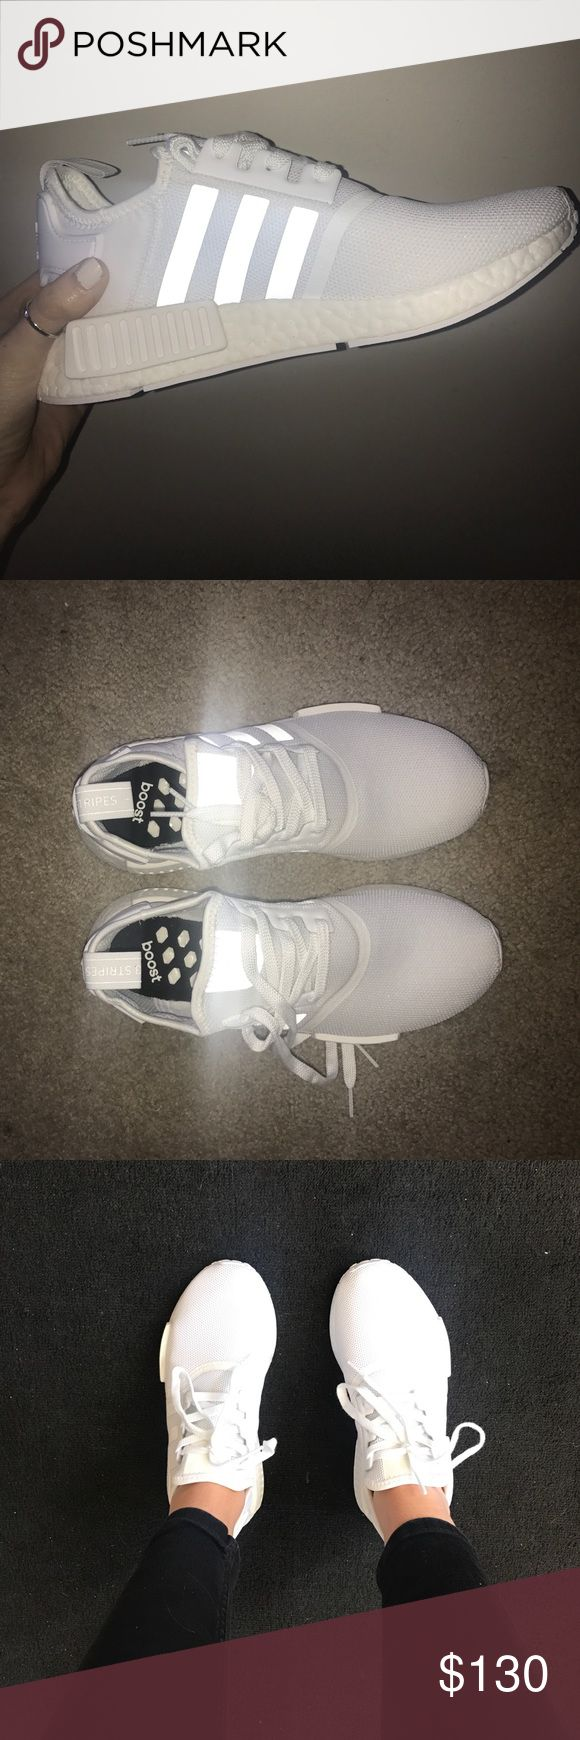 Adidas NMD_R1 men's 7.5 tennis shoe Never been worn just to try on. I wear a size 8 1/2 9 in women's and these were just a tad wide for my narrow feet so I ordered the 7 instead. Bright white, never been outside Adidas Shoes Sneakers